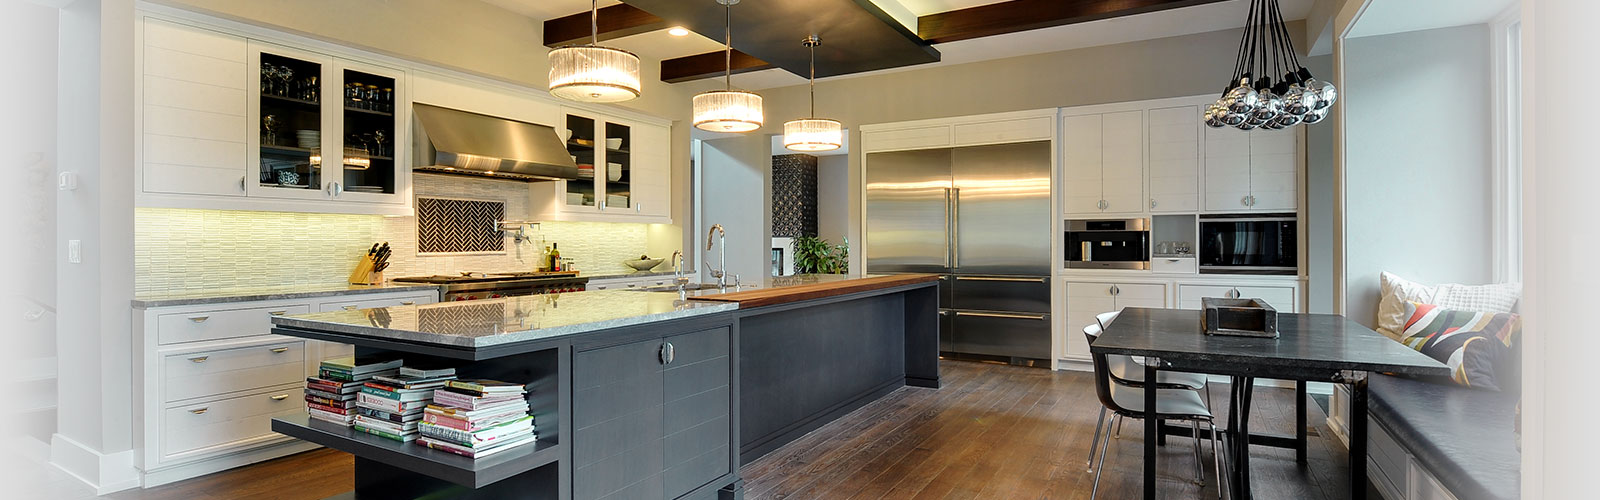 Kitchen, Globex Developments - New Custom Homes Builder